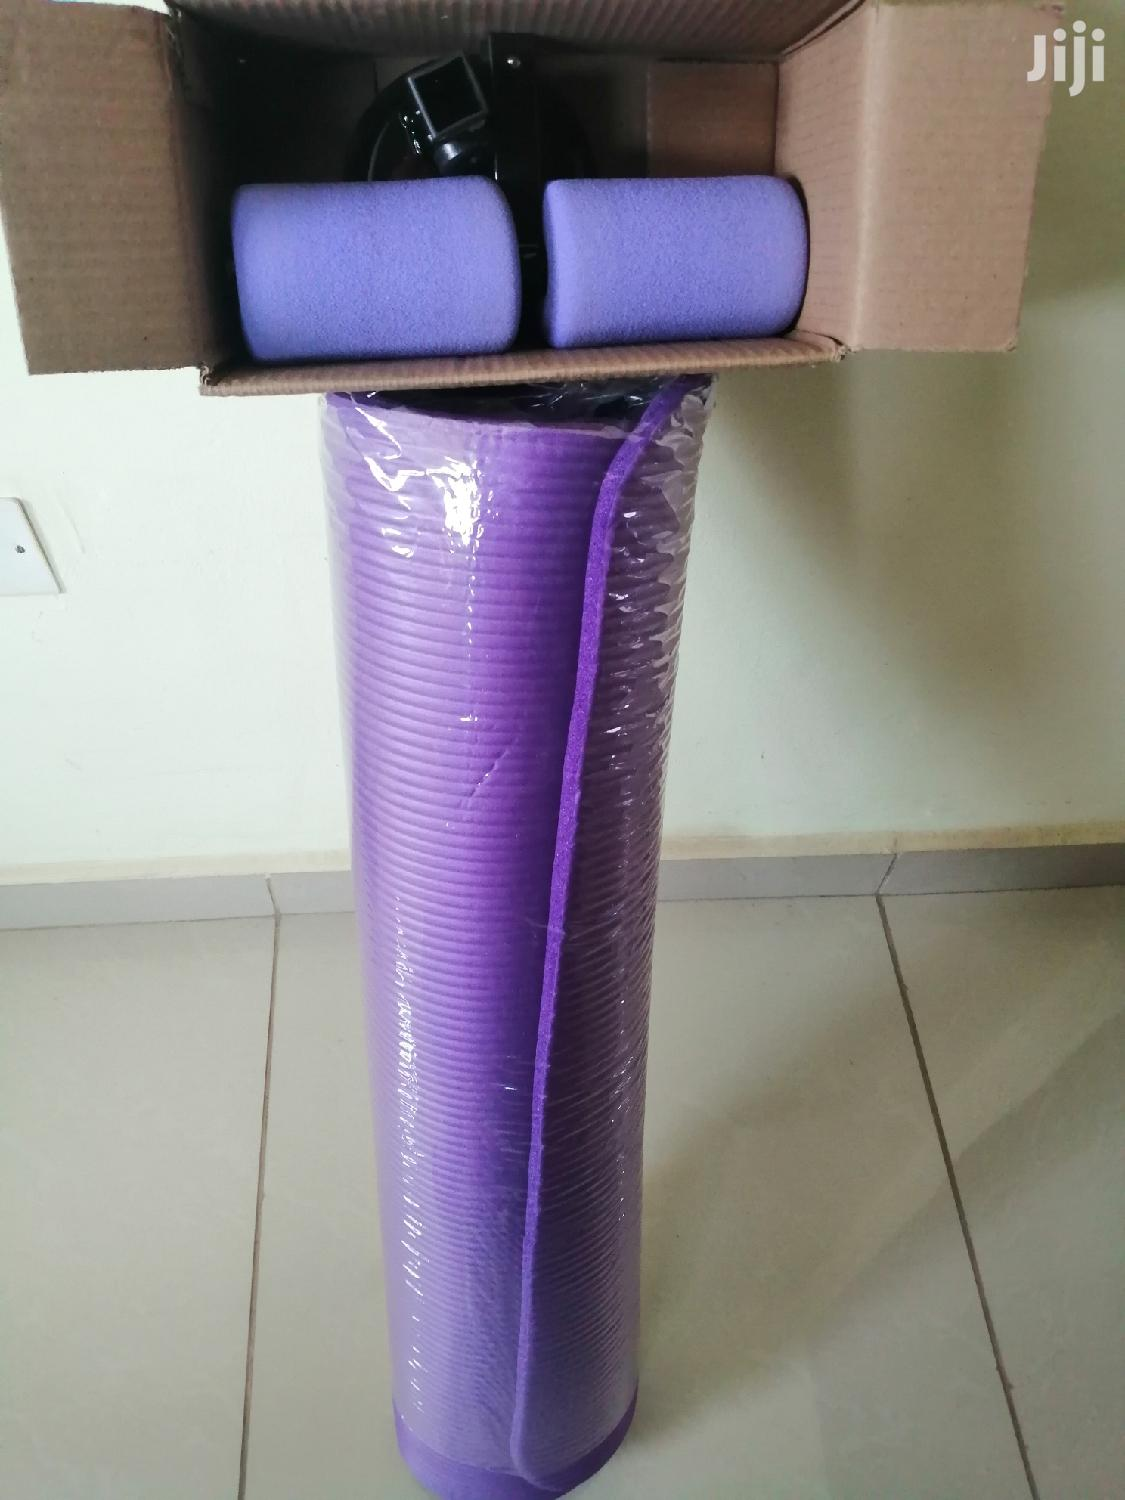 Situp Bar For Tummy Exercise   Sports Equipment for sale in Accra Metropolitan, Greater Accra, Ghana